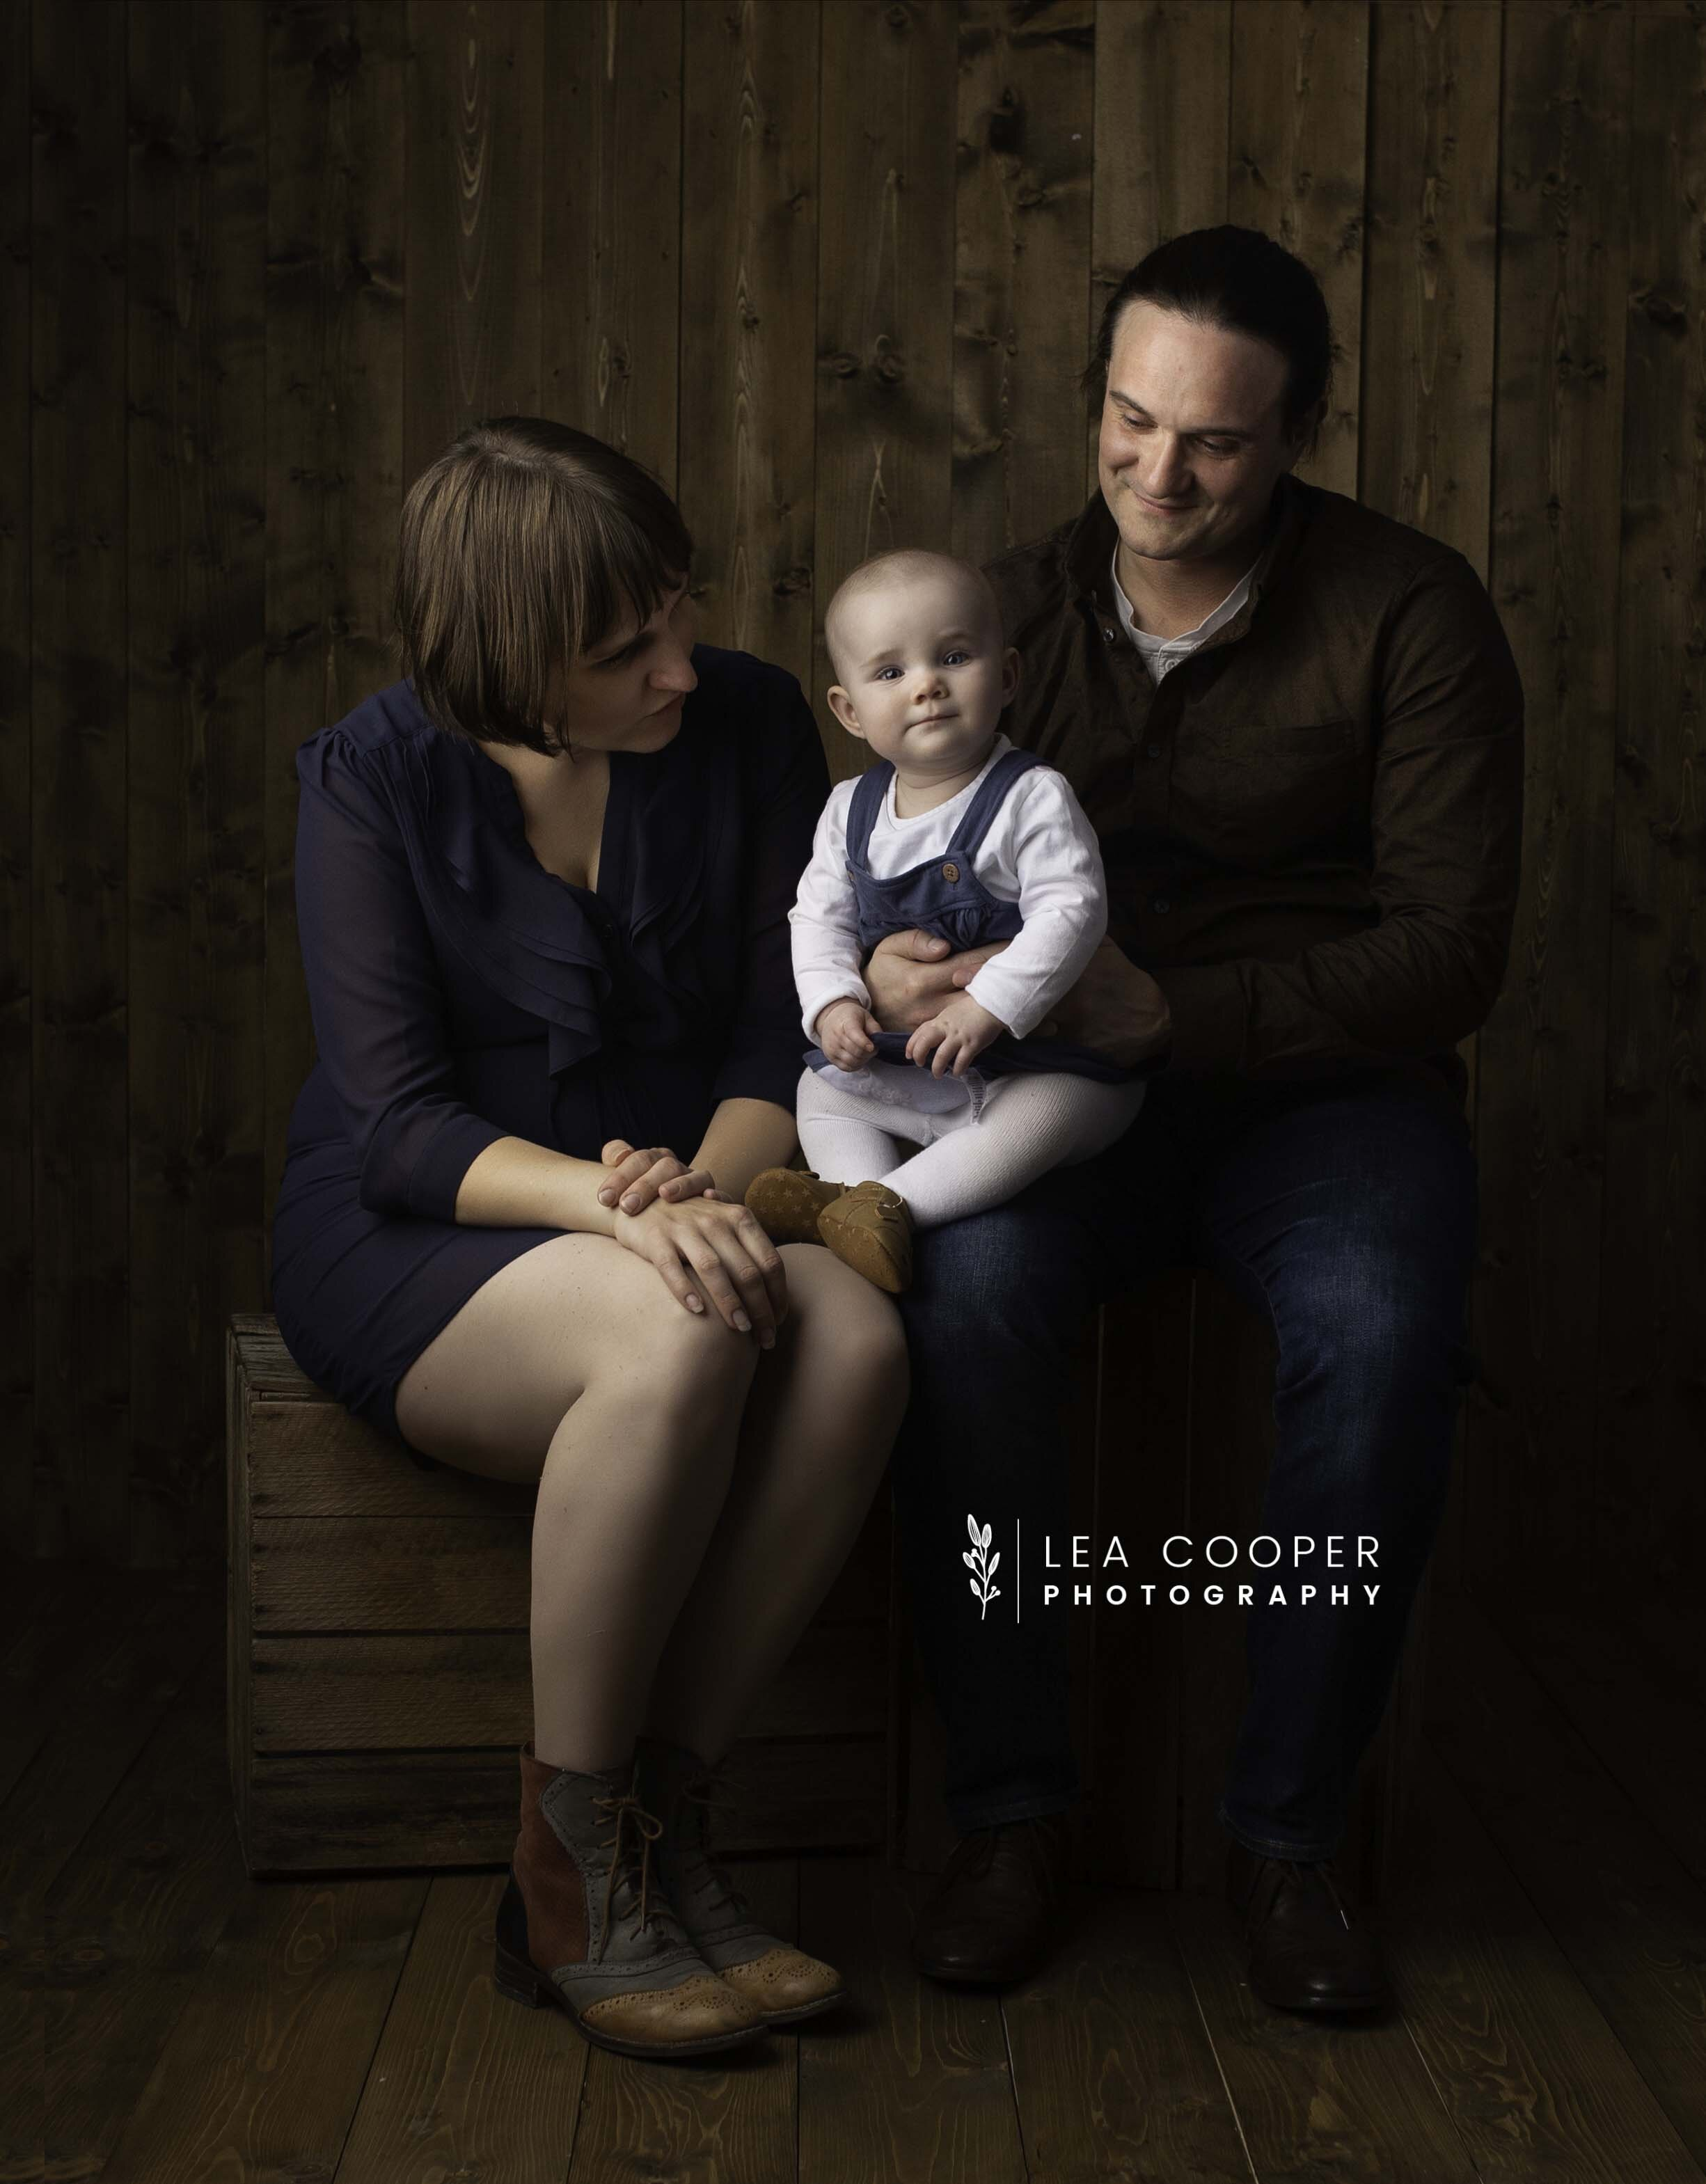 lea-cooper-photography-family-session-family-photoshoot-sitter-session-willenhall-wolverhampton-west-midlands-9.jpg